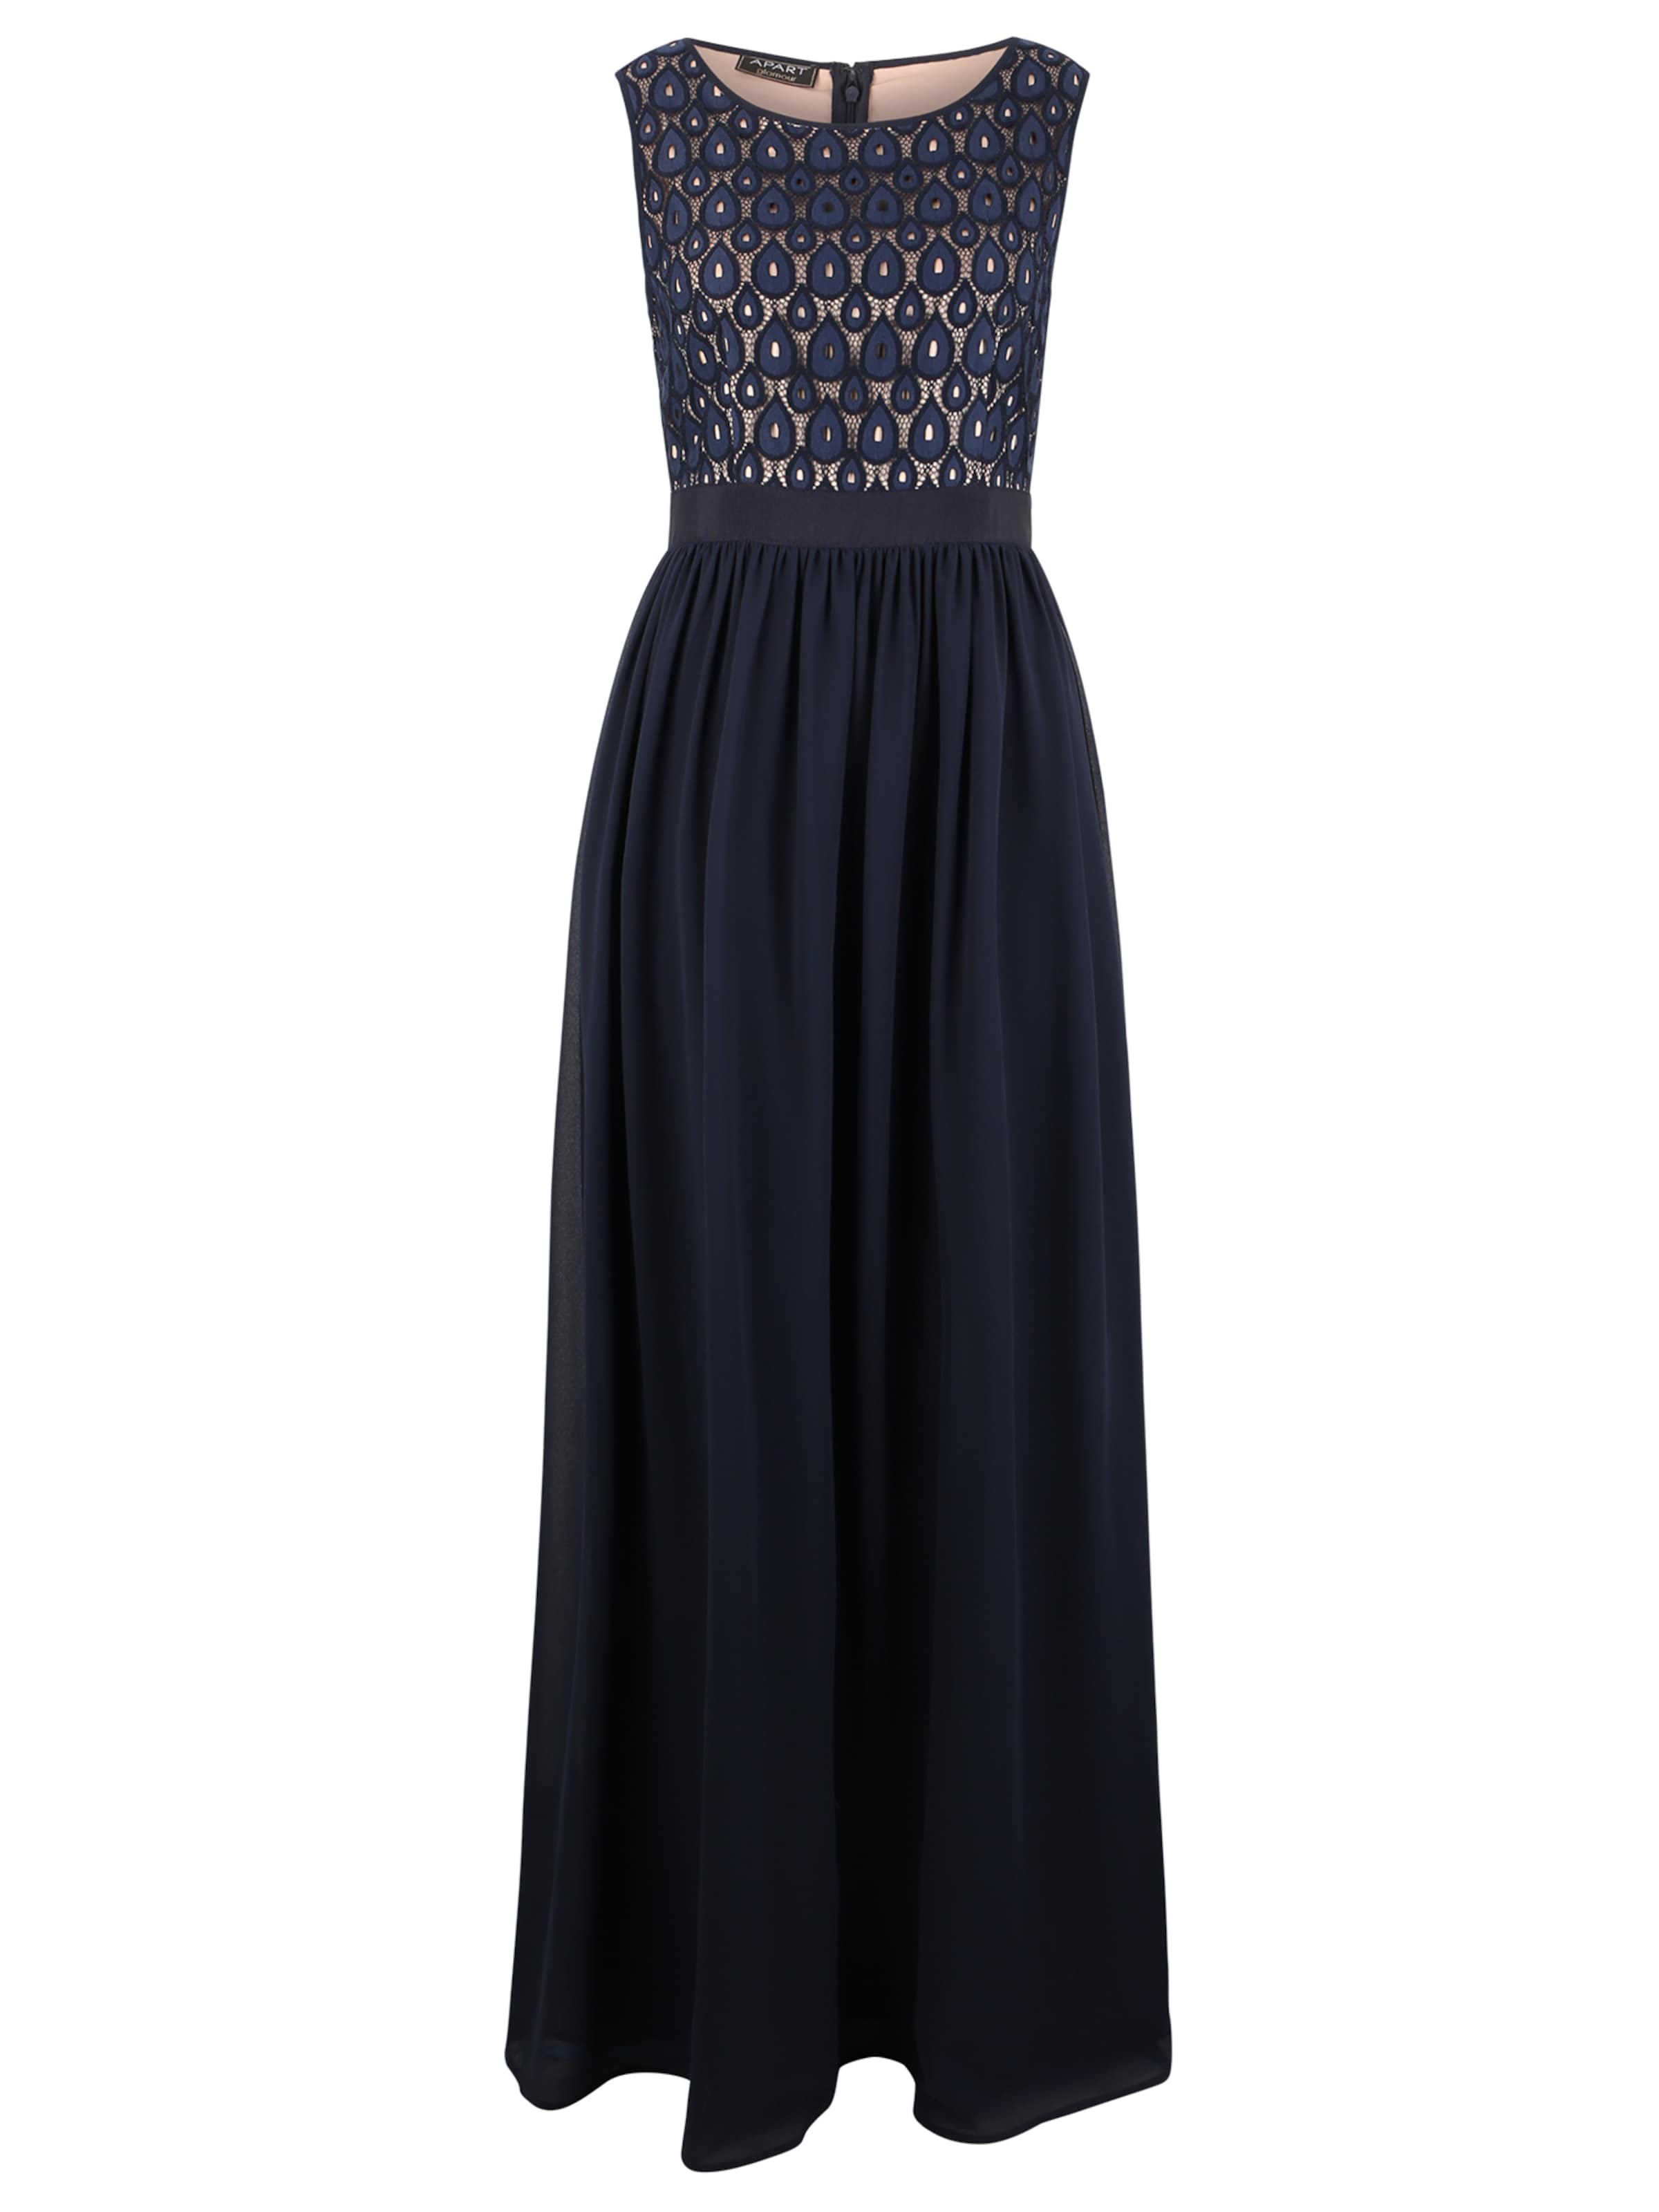 NavyCappuccino In In NavyCappuccino Abendkleid NavyCappuccino Apart Apart Apart Abendkleid Apart In Abendkleid Abendkleid n80wvmNO